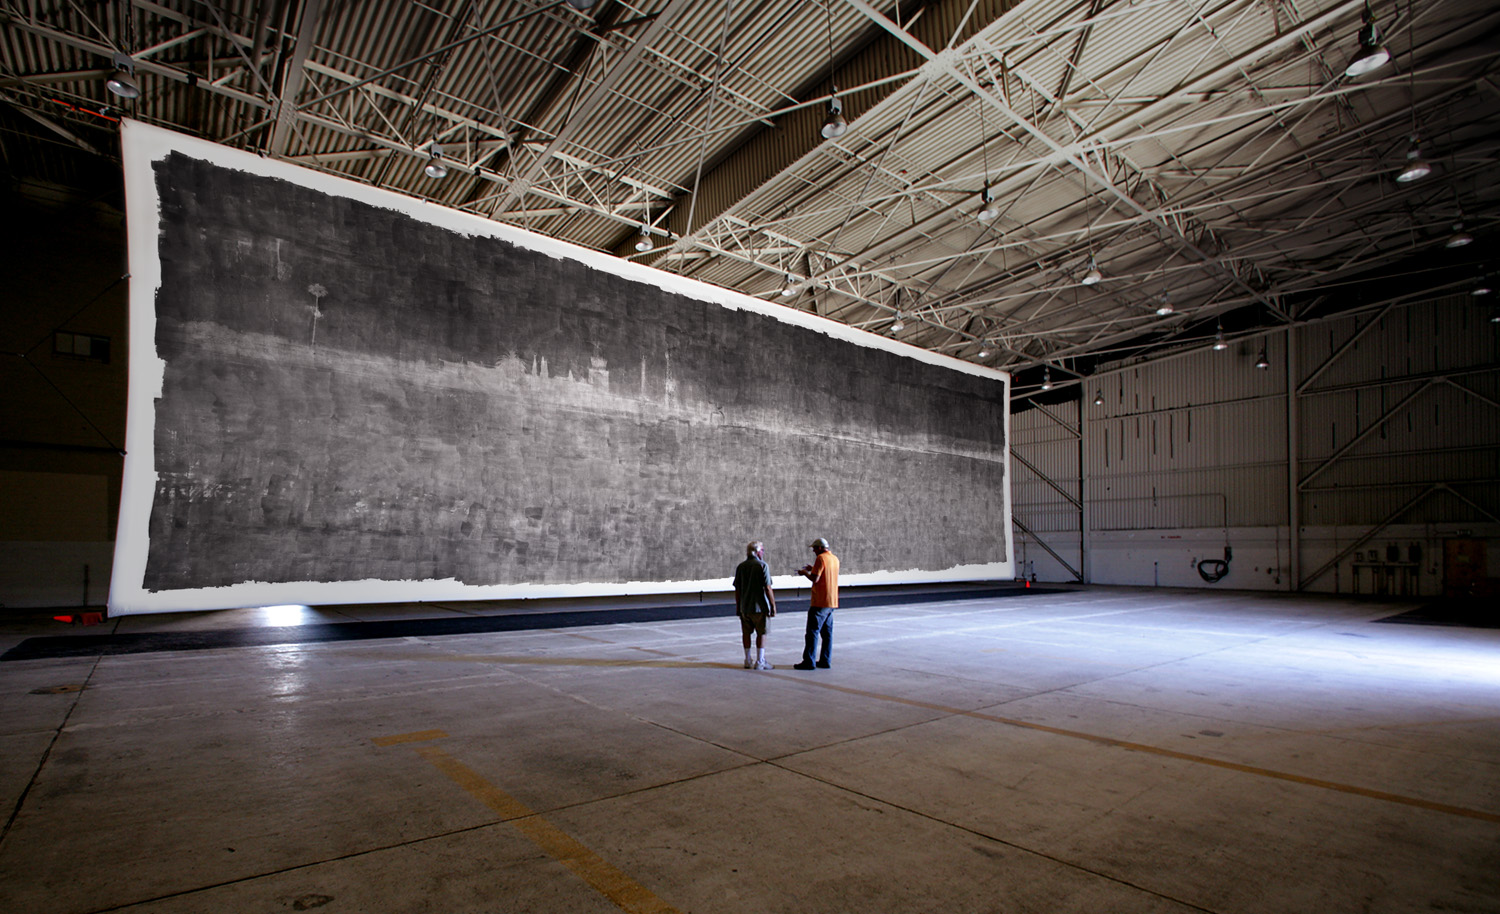 The world record photograph - 32 feet by 111 feet - in place in the closed F-18 jet hanger used as a camera to make the image.